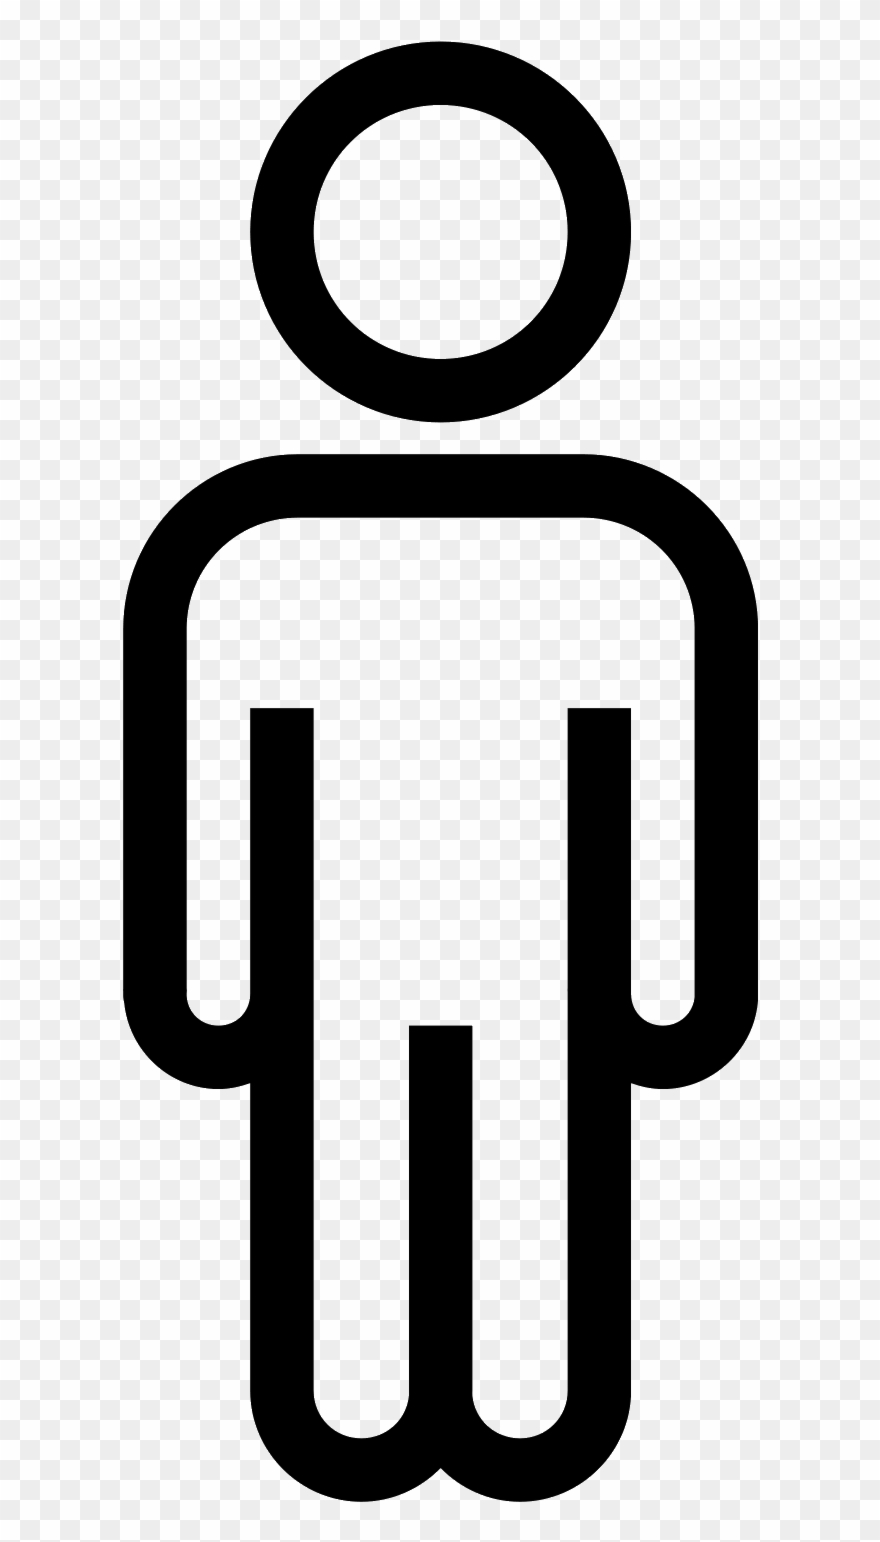 Person Outline Png.